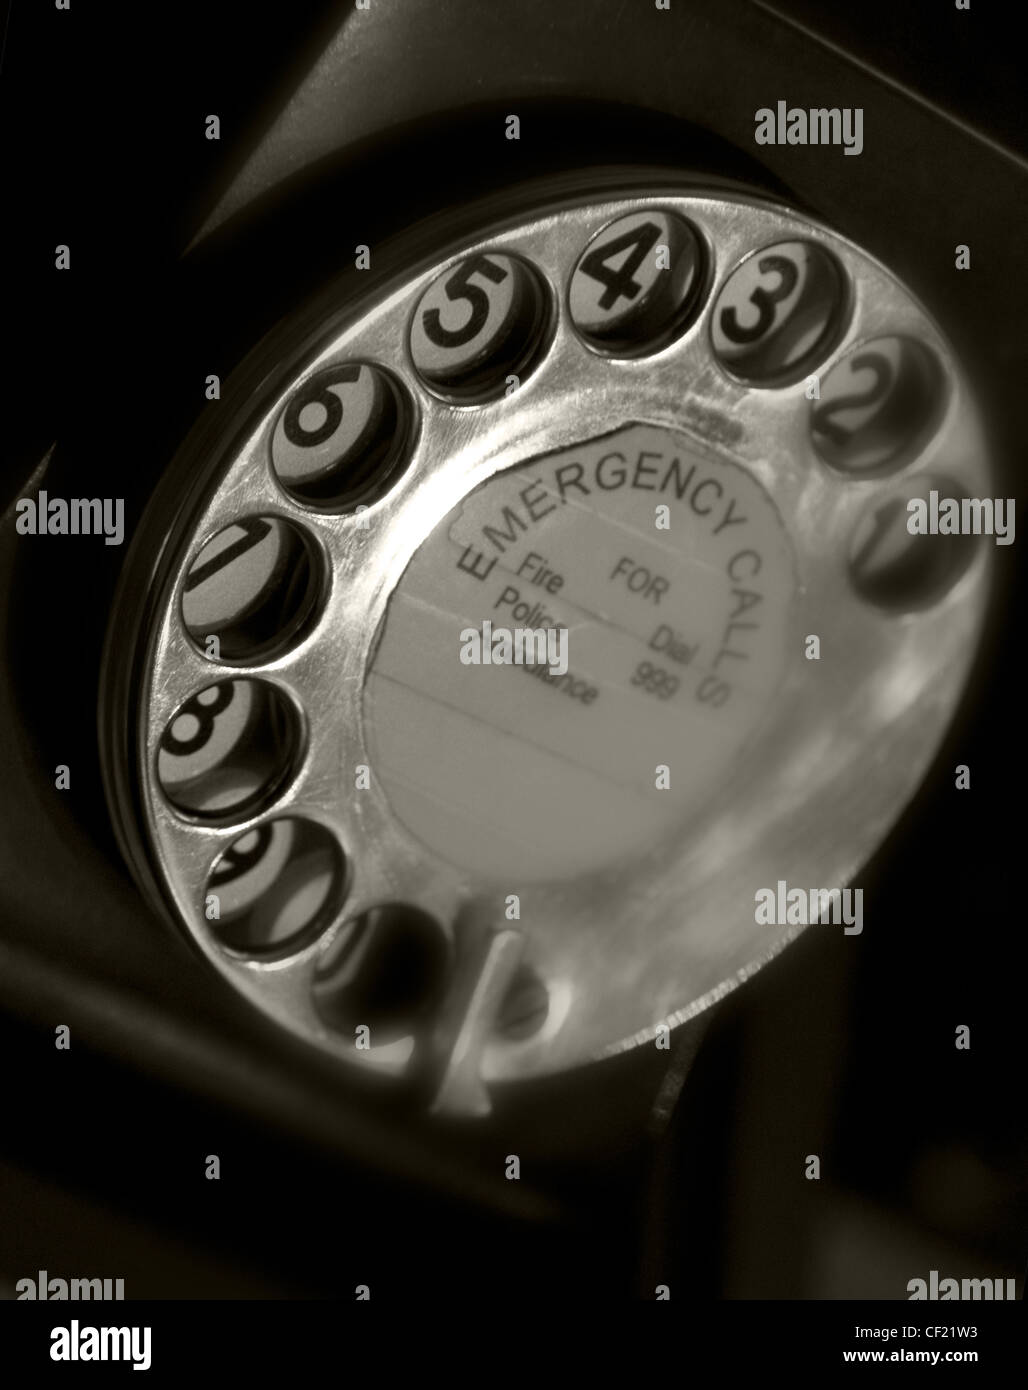 Black,Telephone,dial,Emergency,Call,-,999,gotonysmith,fire,police,ambulance,dial,analogue,gotonysmith,Buy Pictures of,Buy Images Of